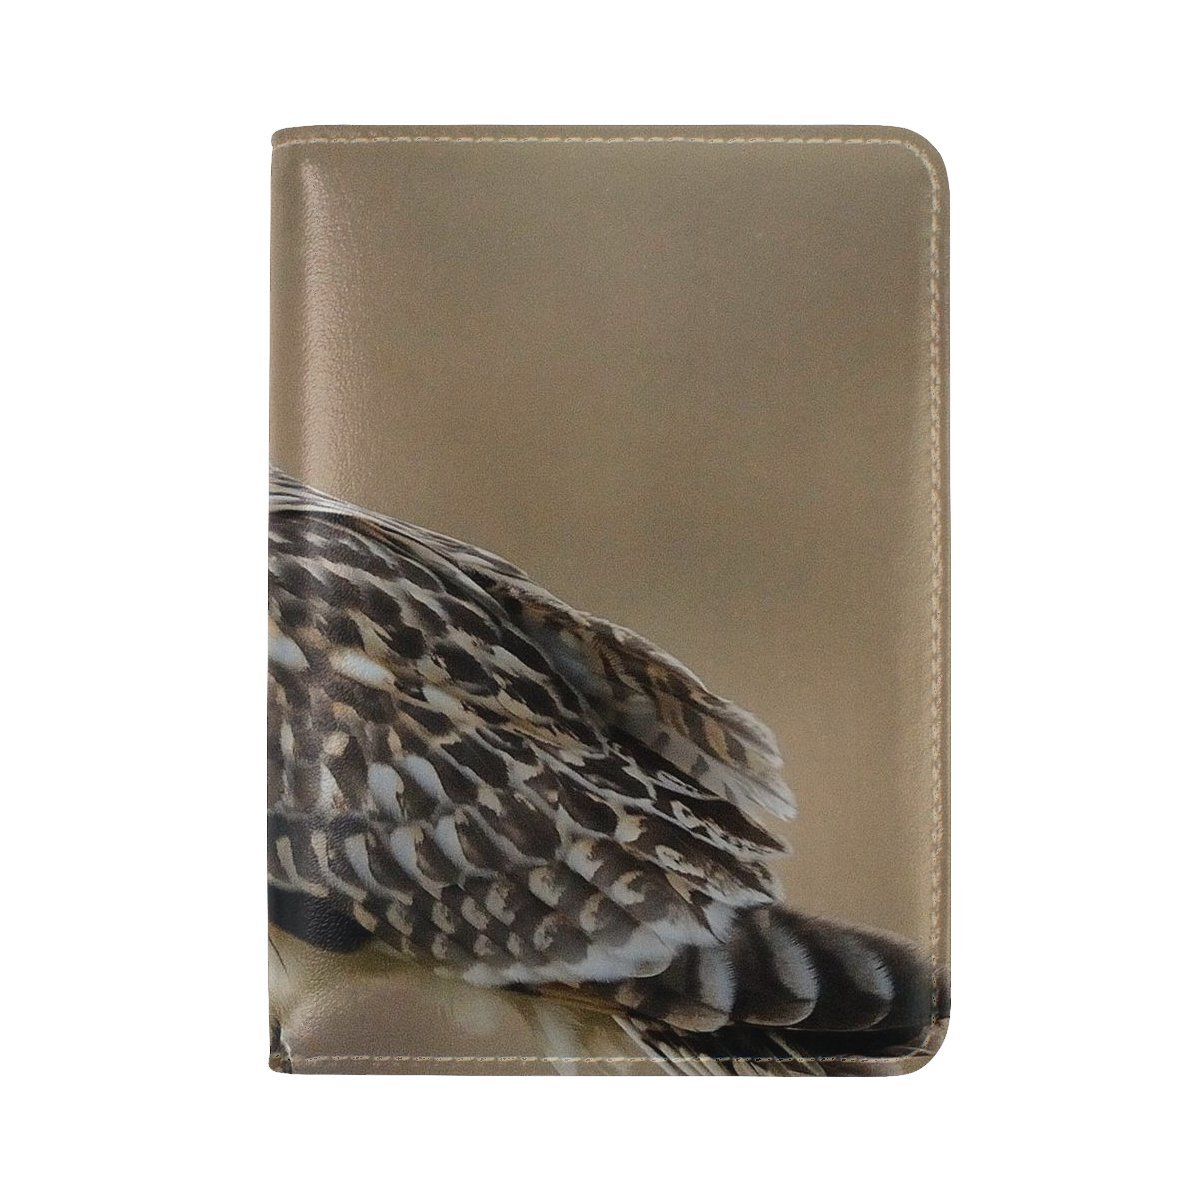 Animal Owl Short-eared Flying Tangled Adorable Fluffy Natural Tree Leather Passport Holder Cover Case Travel One Pocket